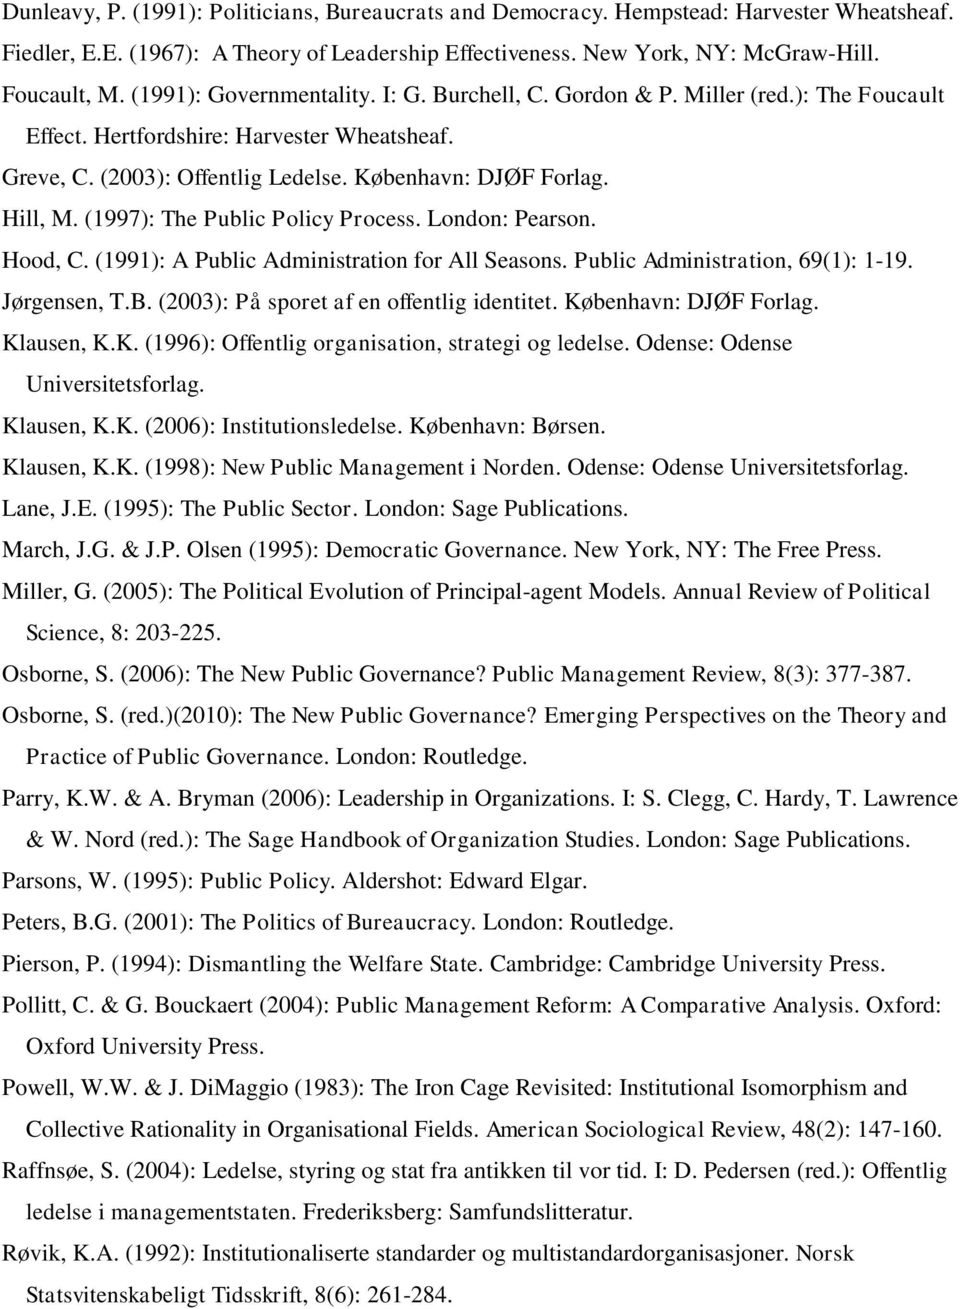 (1997): The Public Policy Process. London: Pearson. Hood, C. (1991): A Public Administration for All Seasons. Public Administration, 69(1): 1-19. Jørgensen, T.B.